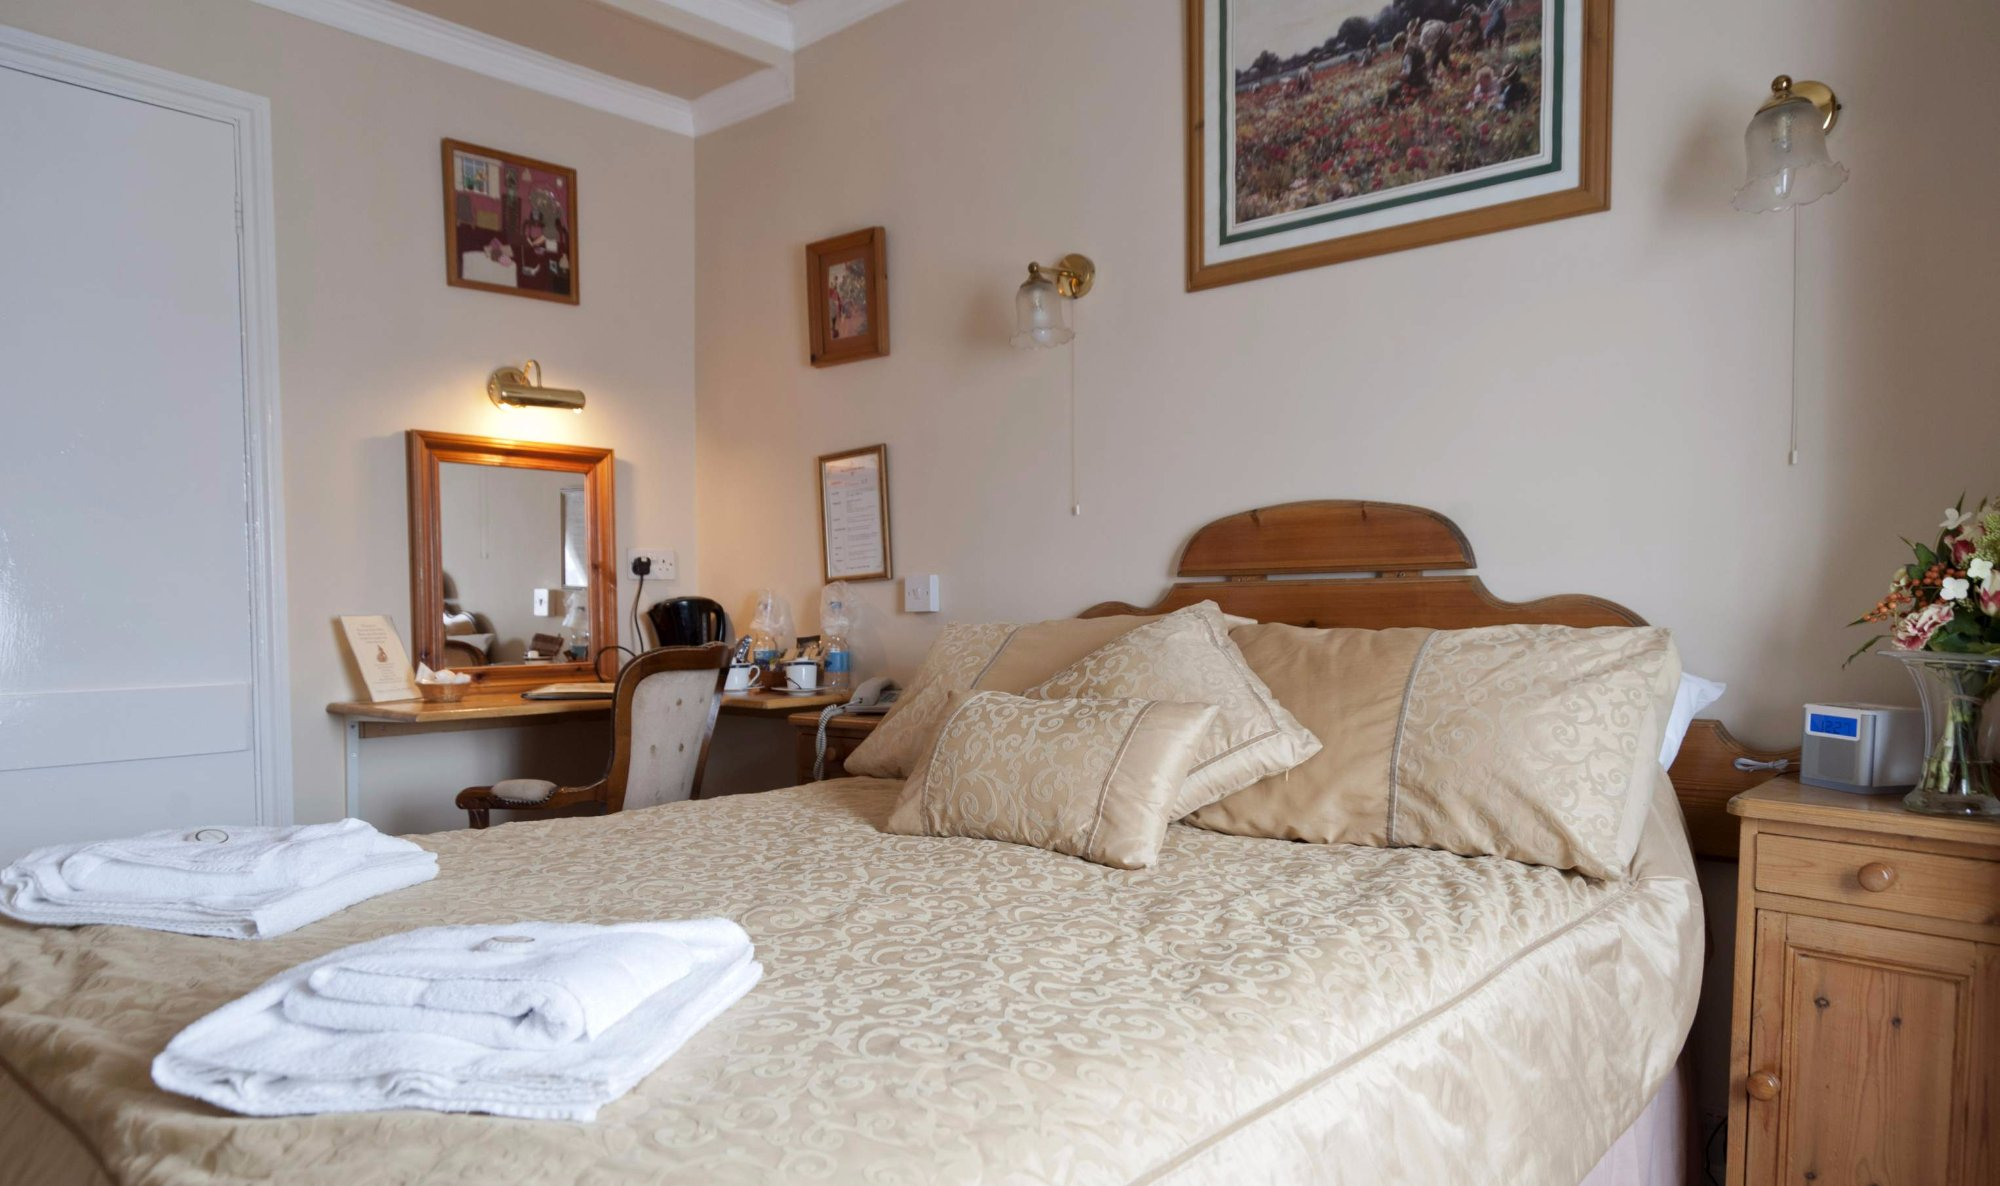 Listers Bedroom Furniture Lord Lister Hotel Reviews Photos Prices From Alb69 Hitchin